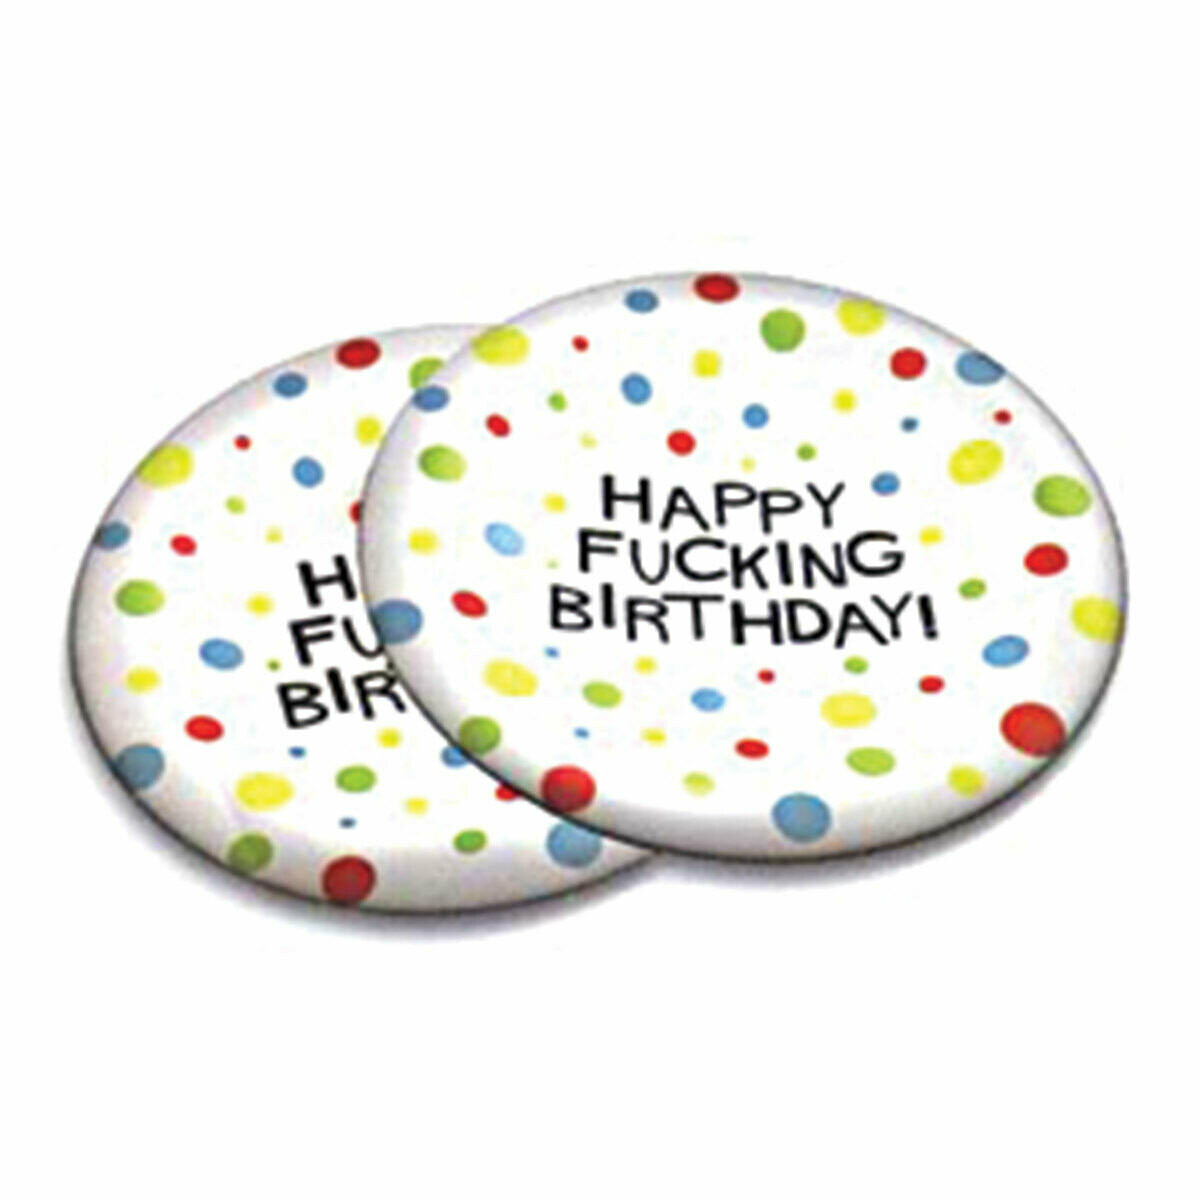 Happy F*cking Birthday Plates